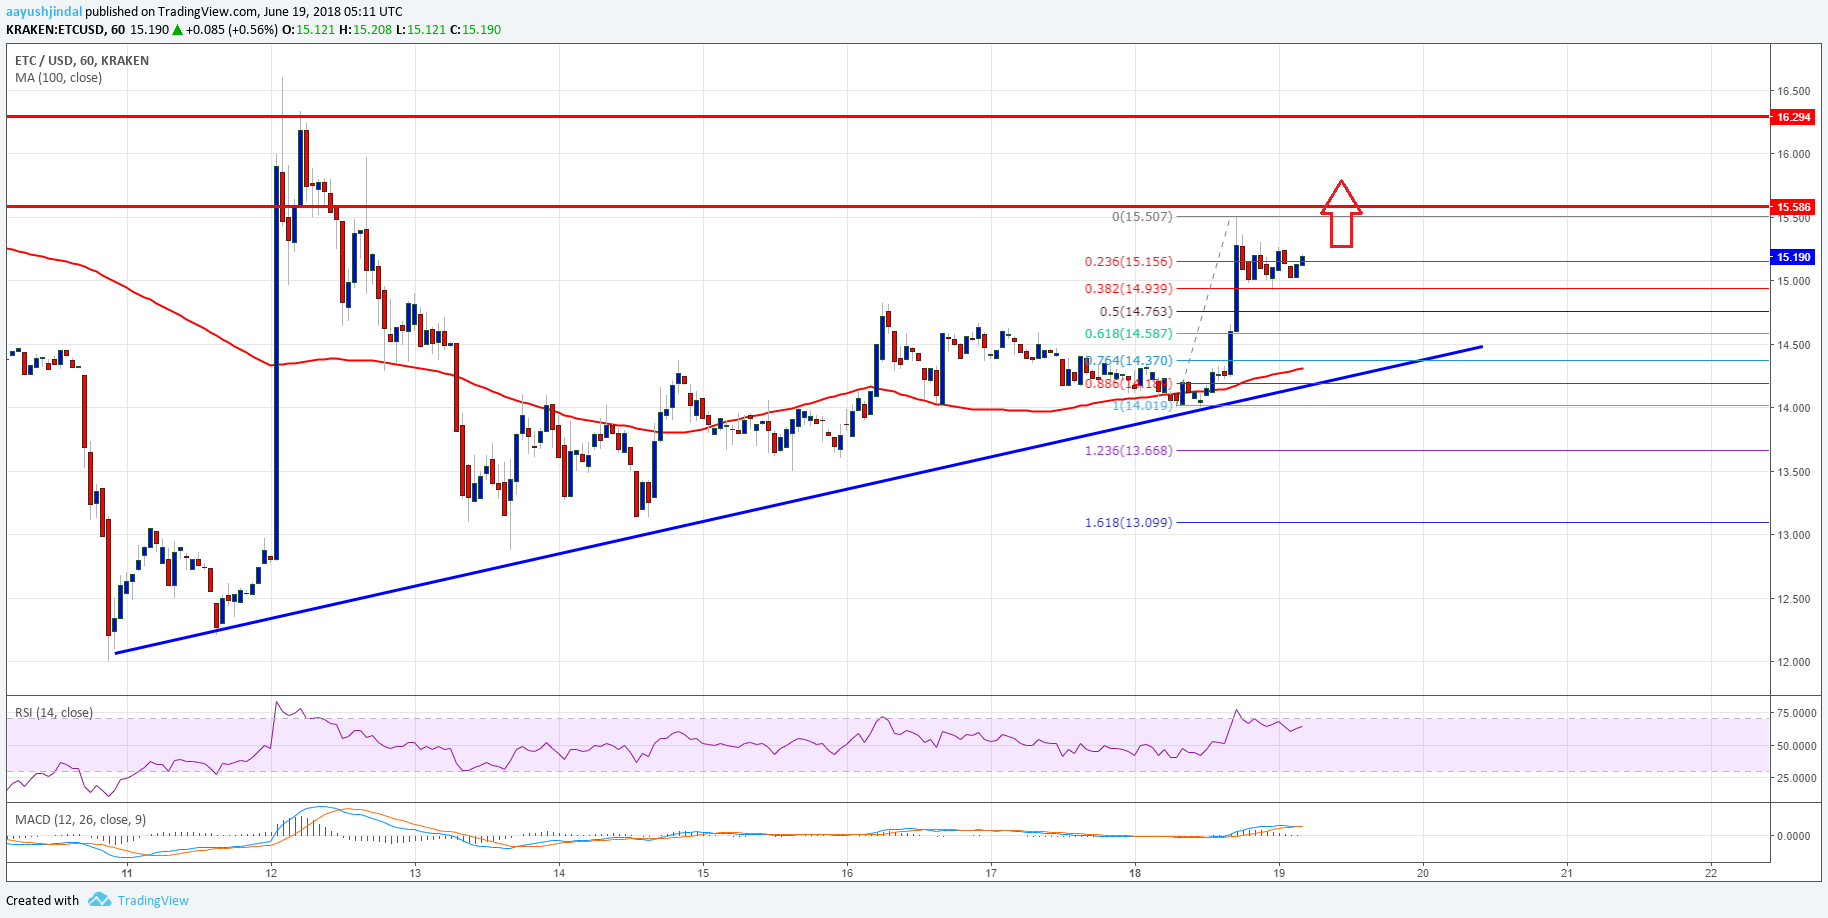 Litecoin Trend Chart >> Ethereum Classic Price Analysis: ETC/USD Gaining Momentum - News, Price, Events